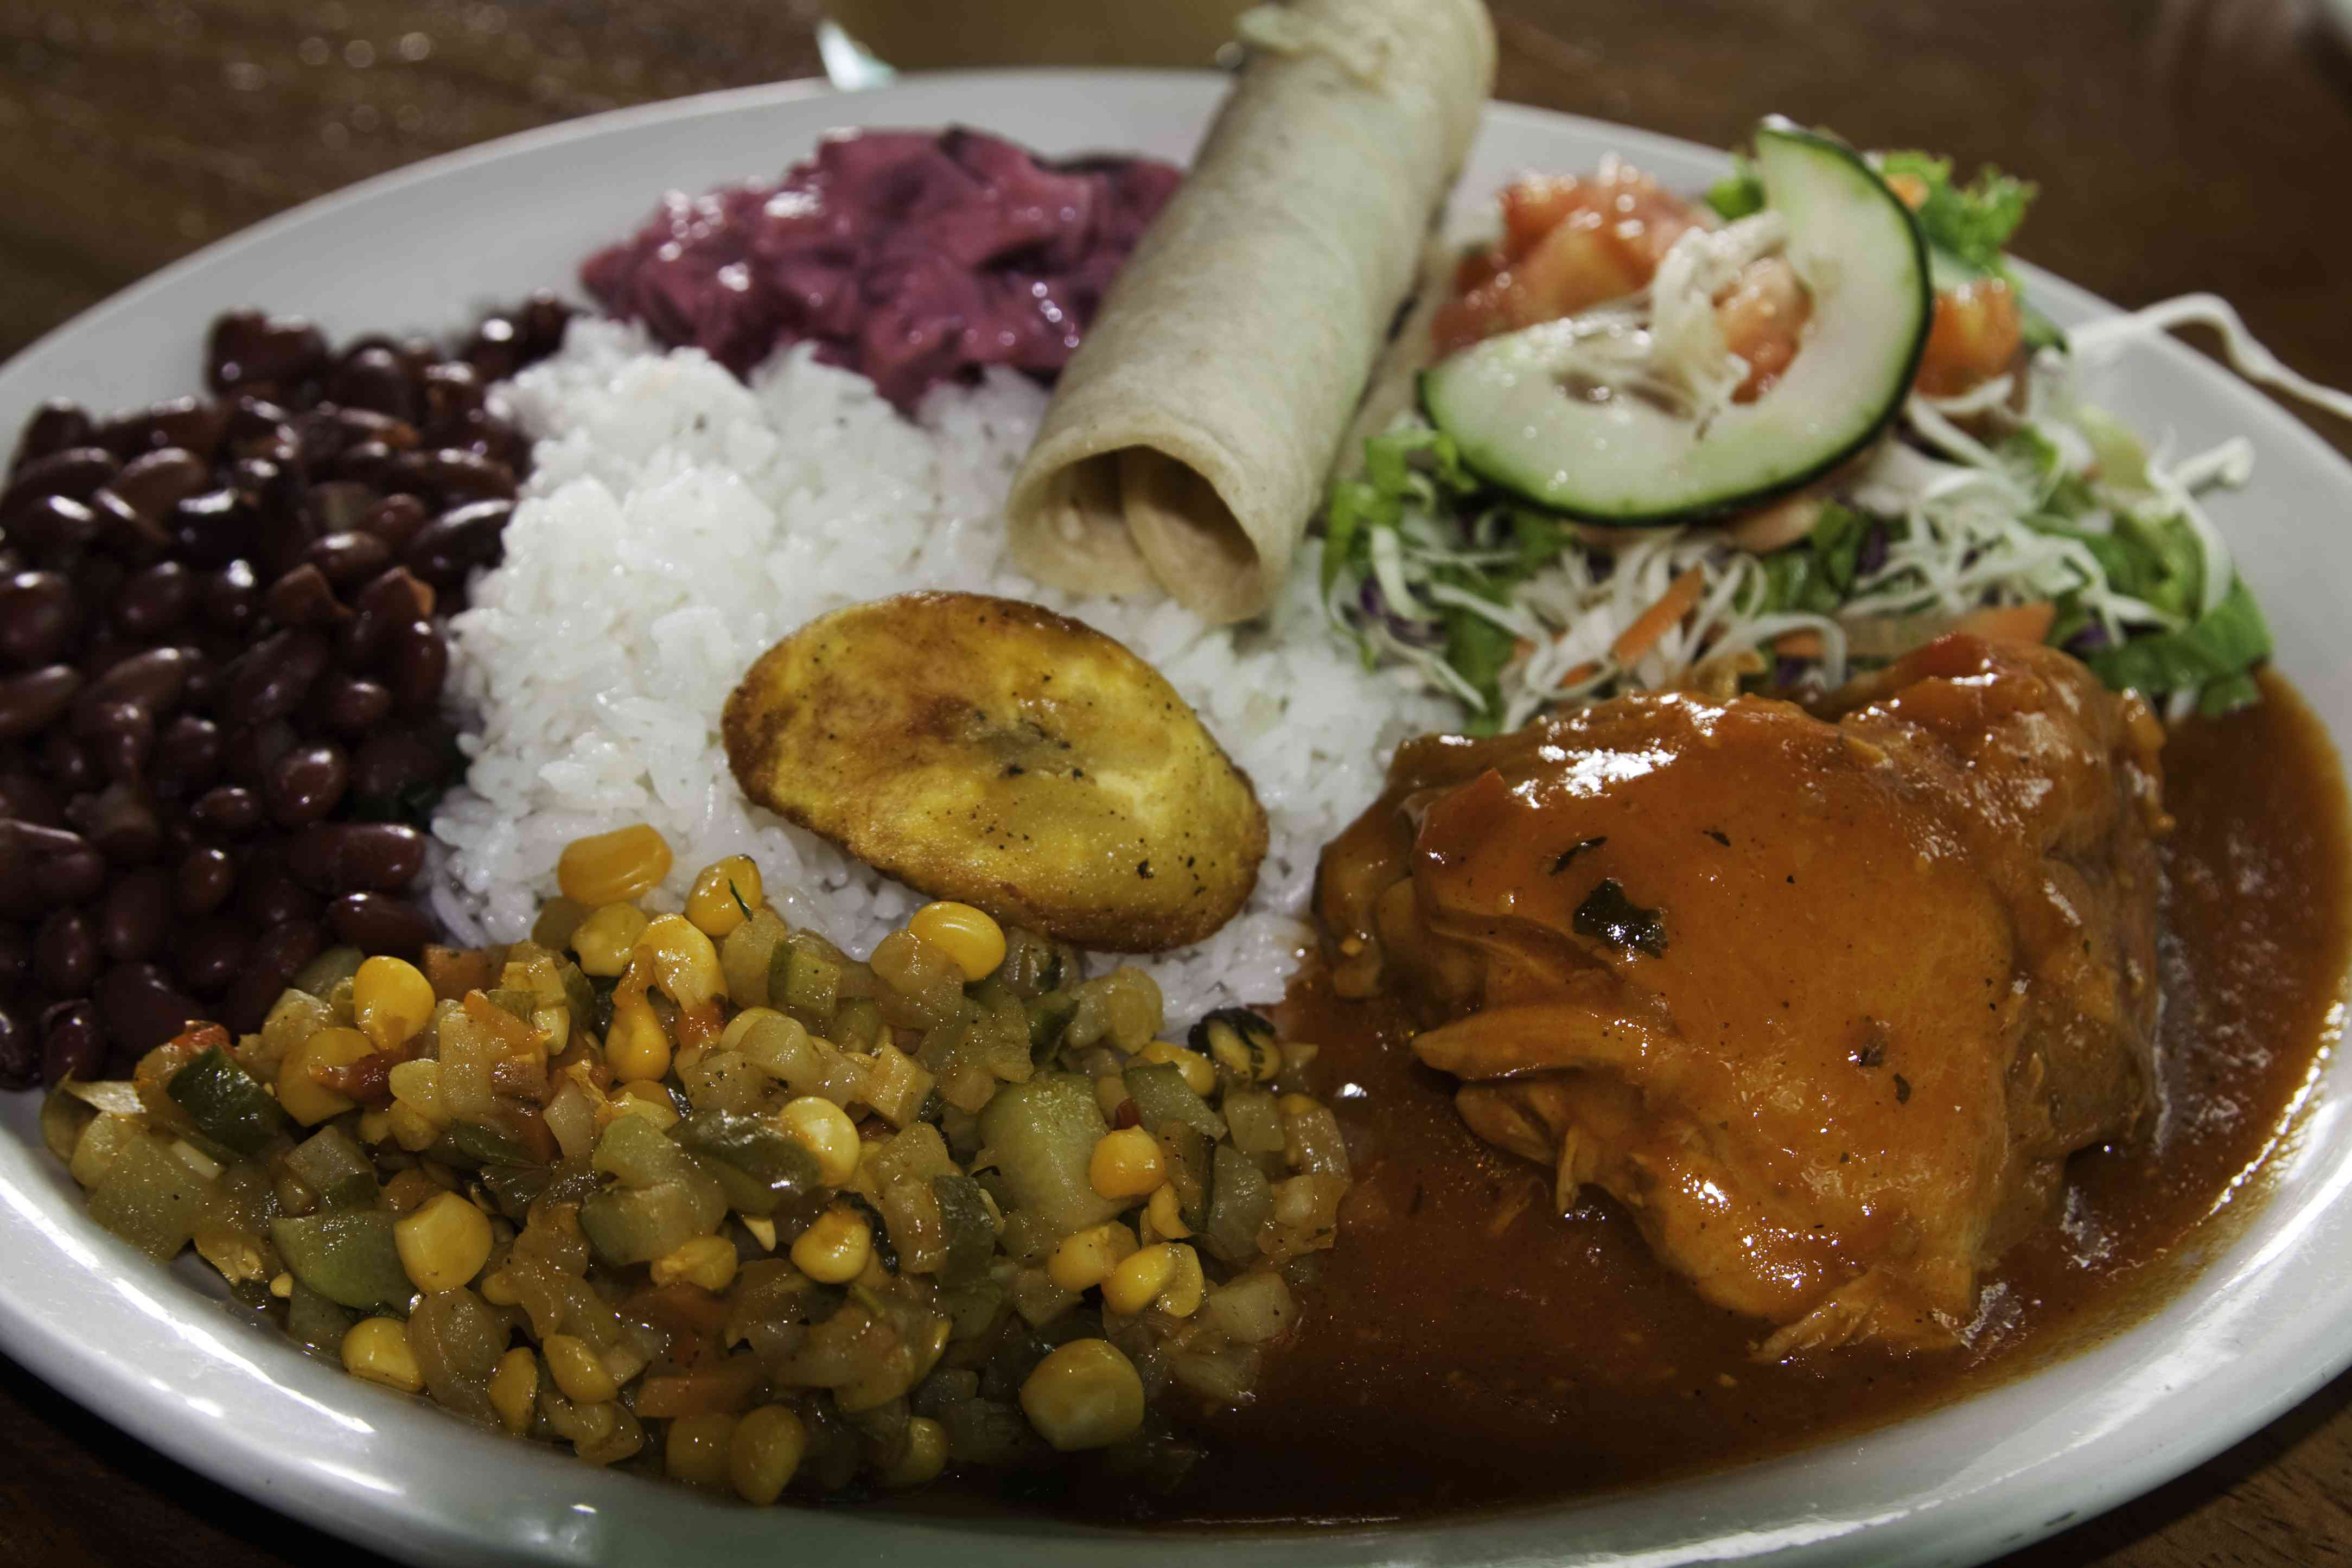 Typical casado Costa Rican lunch: chicken with rice and beans, vegetables and fried plantains.